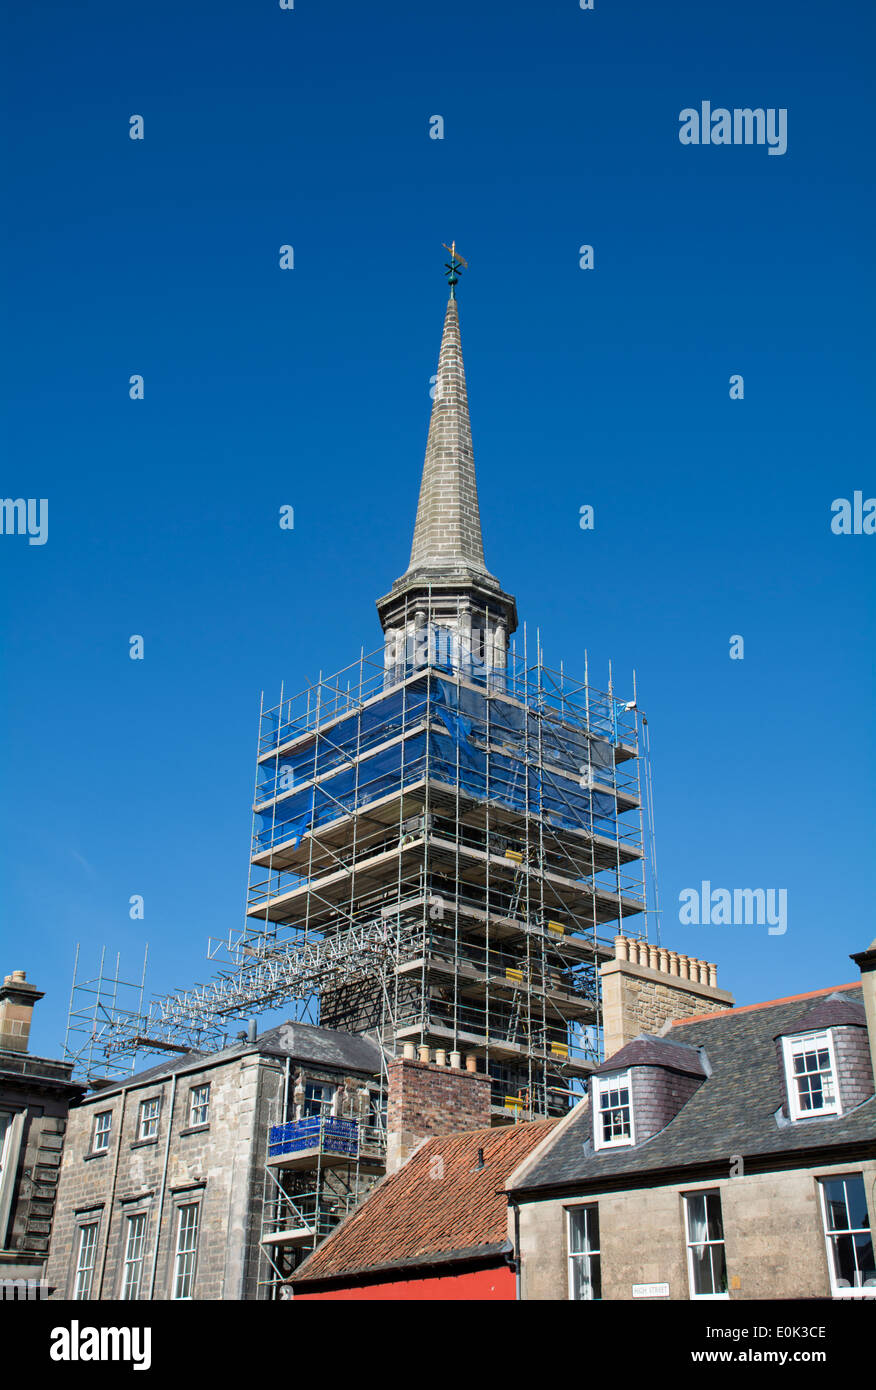 Haddington Town House steeple restoration work and scaffolding. - Stock Image